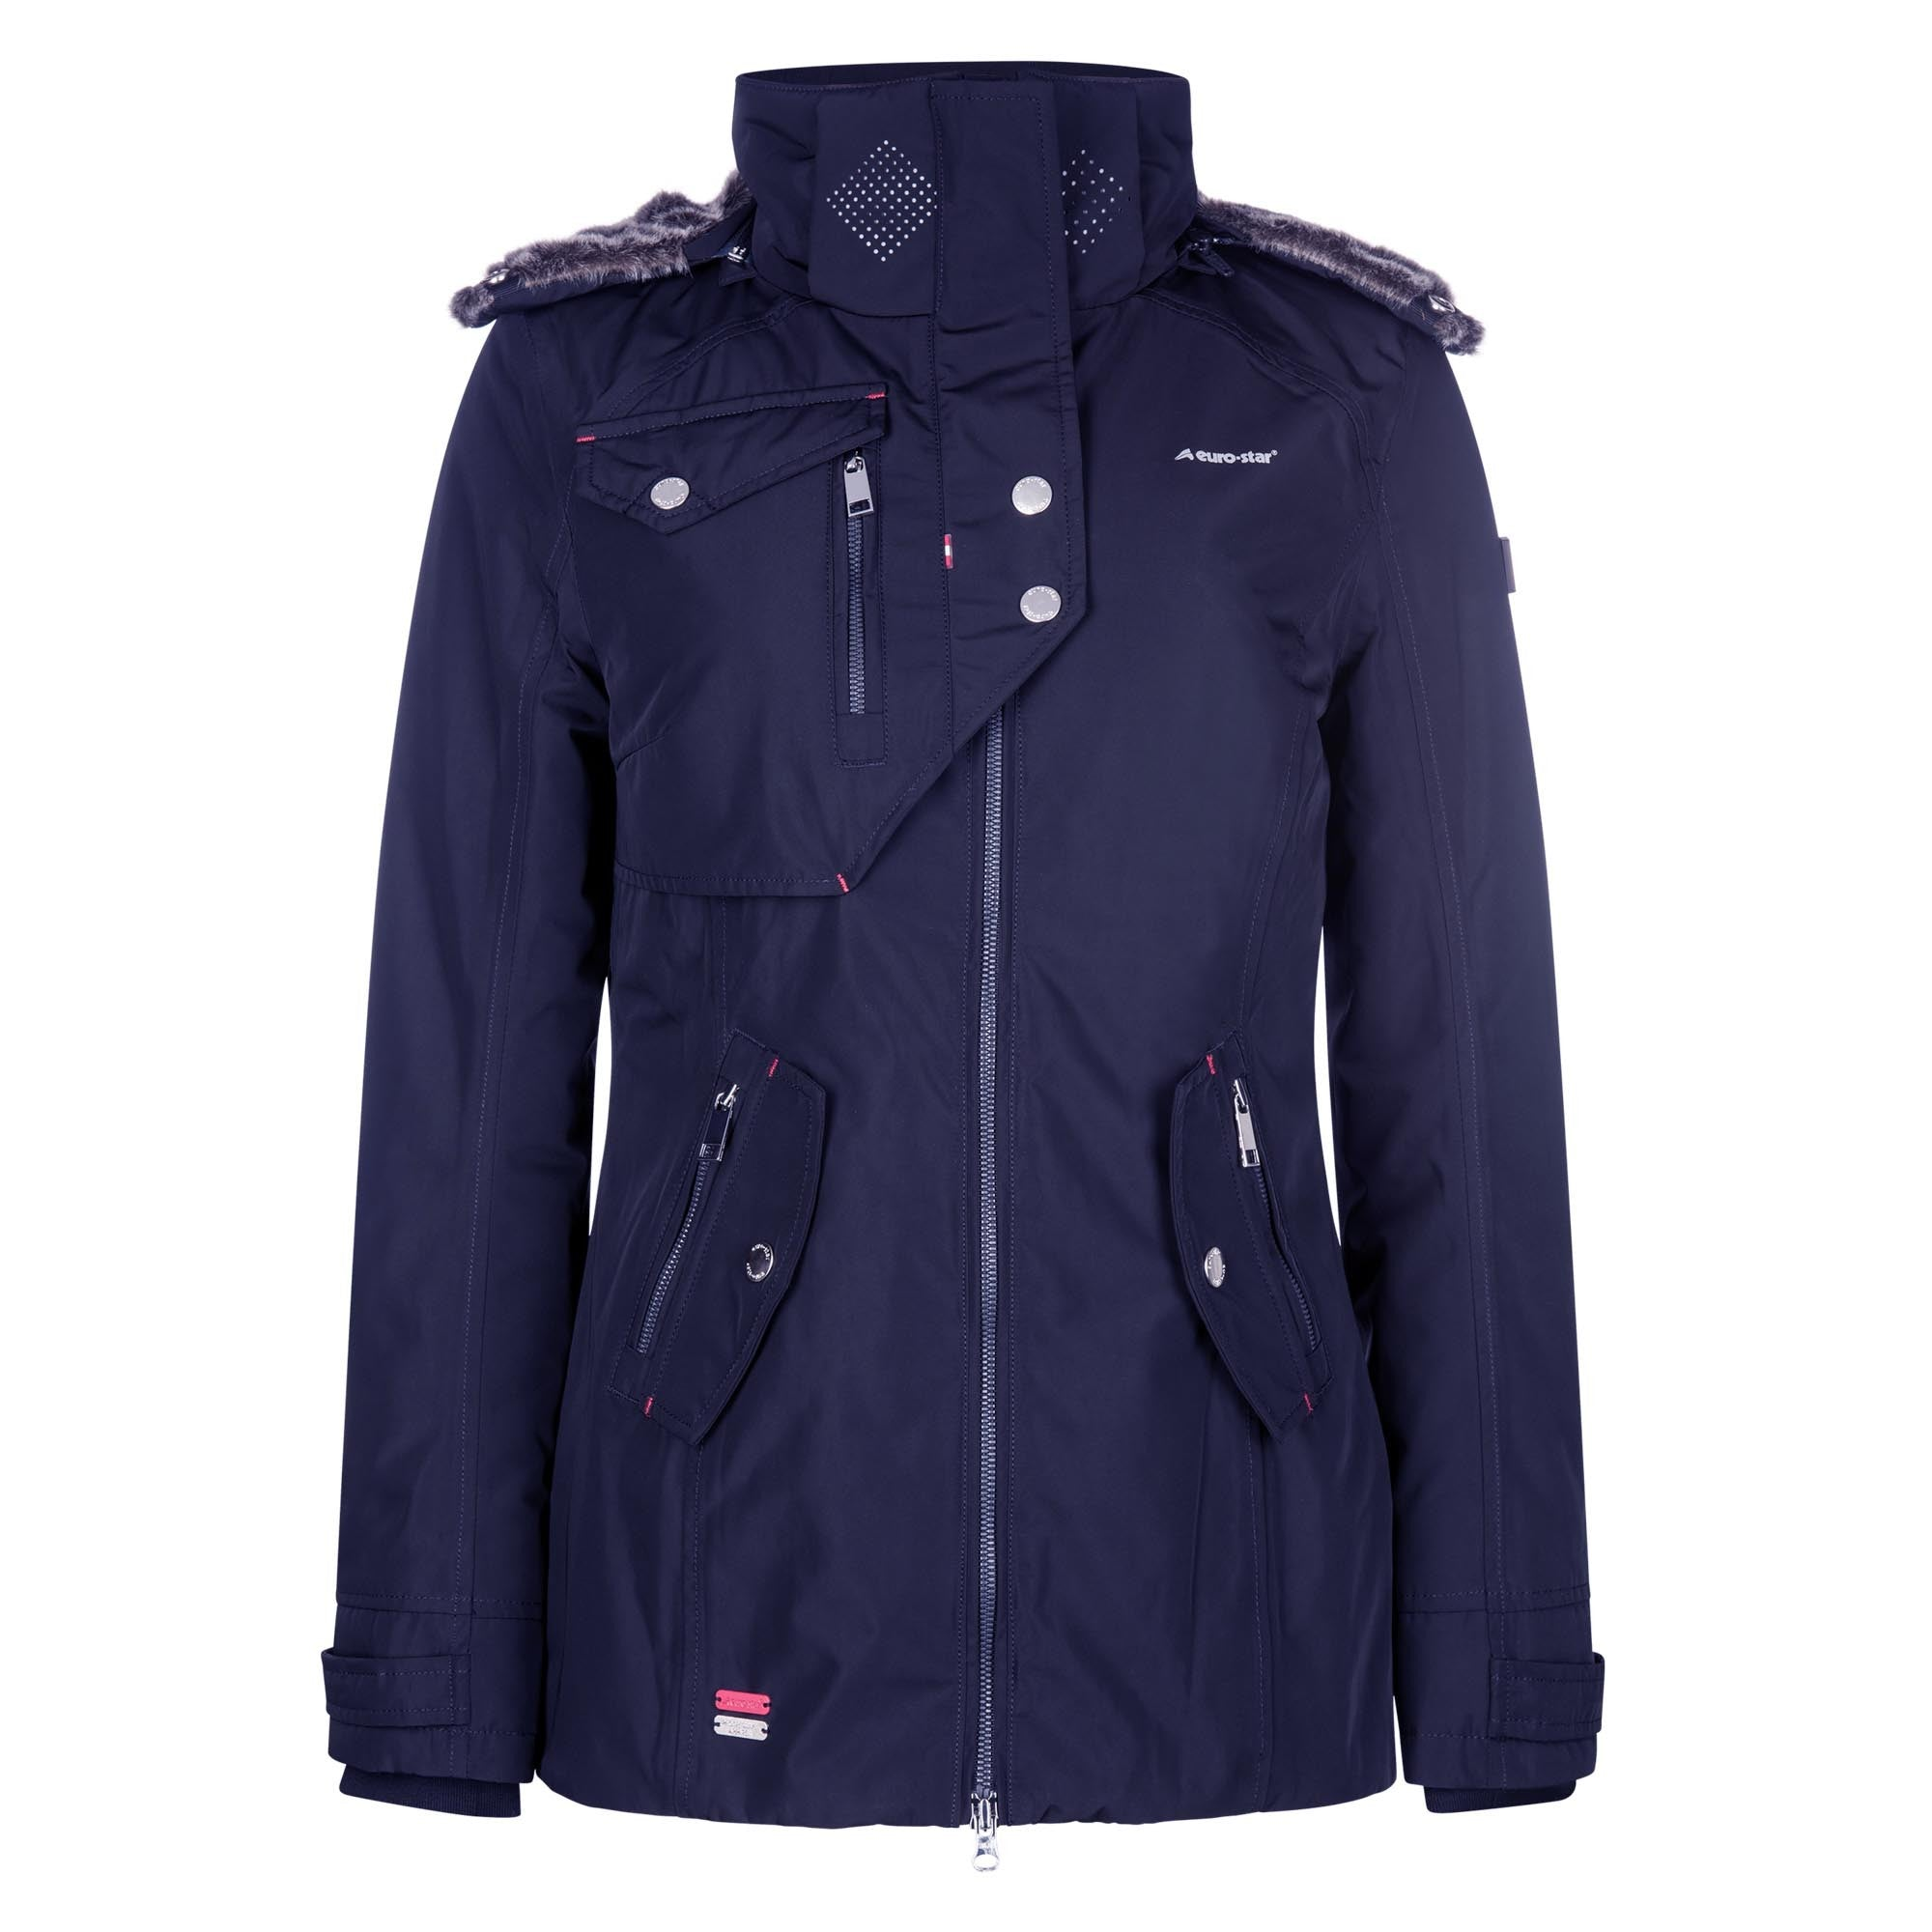 Euro-star Lajana Waterproof Jacket - Navy